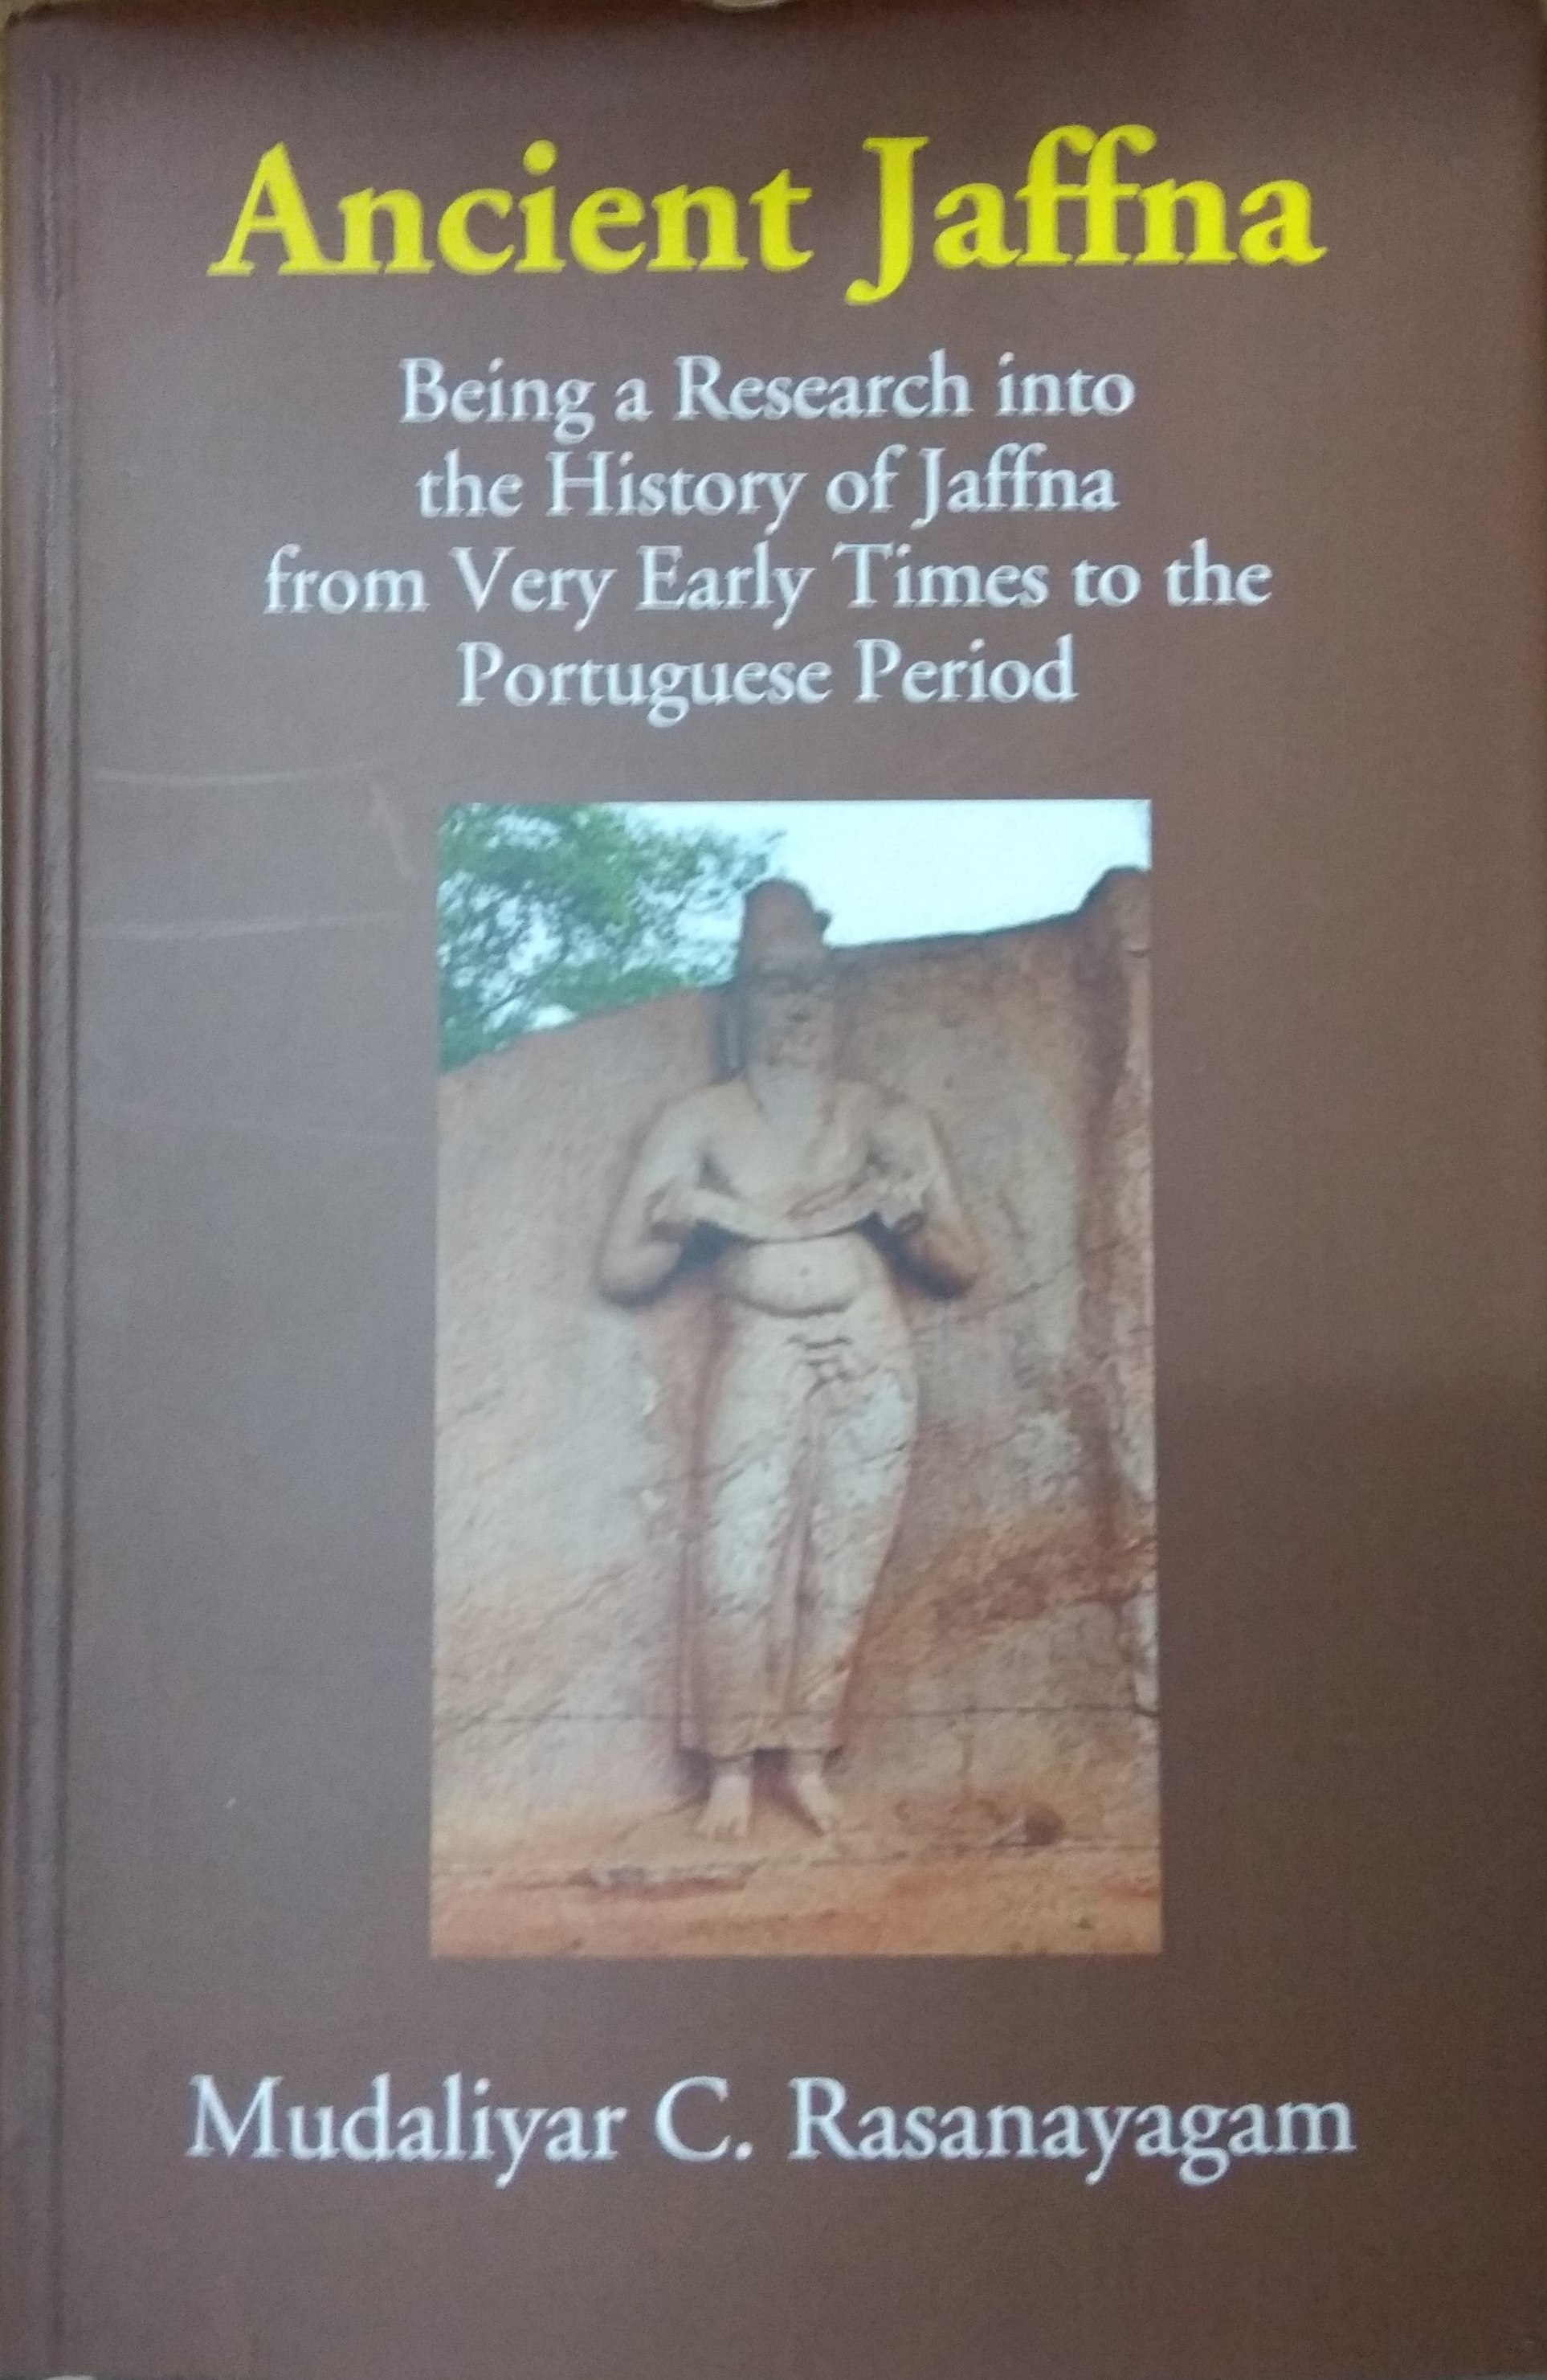 Ancient Jaffna: Being a Research into the History …